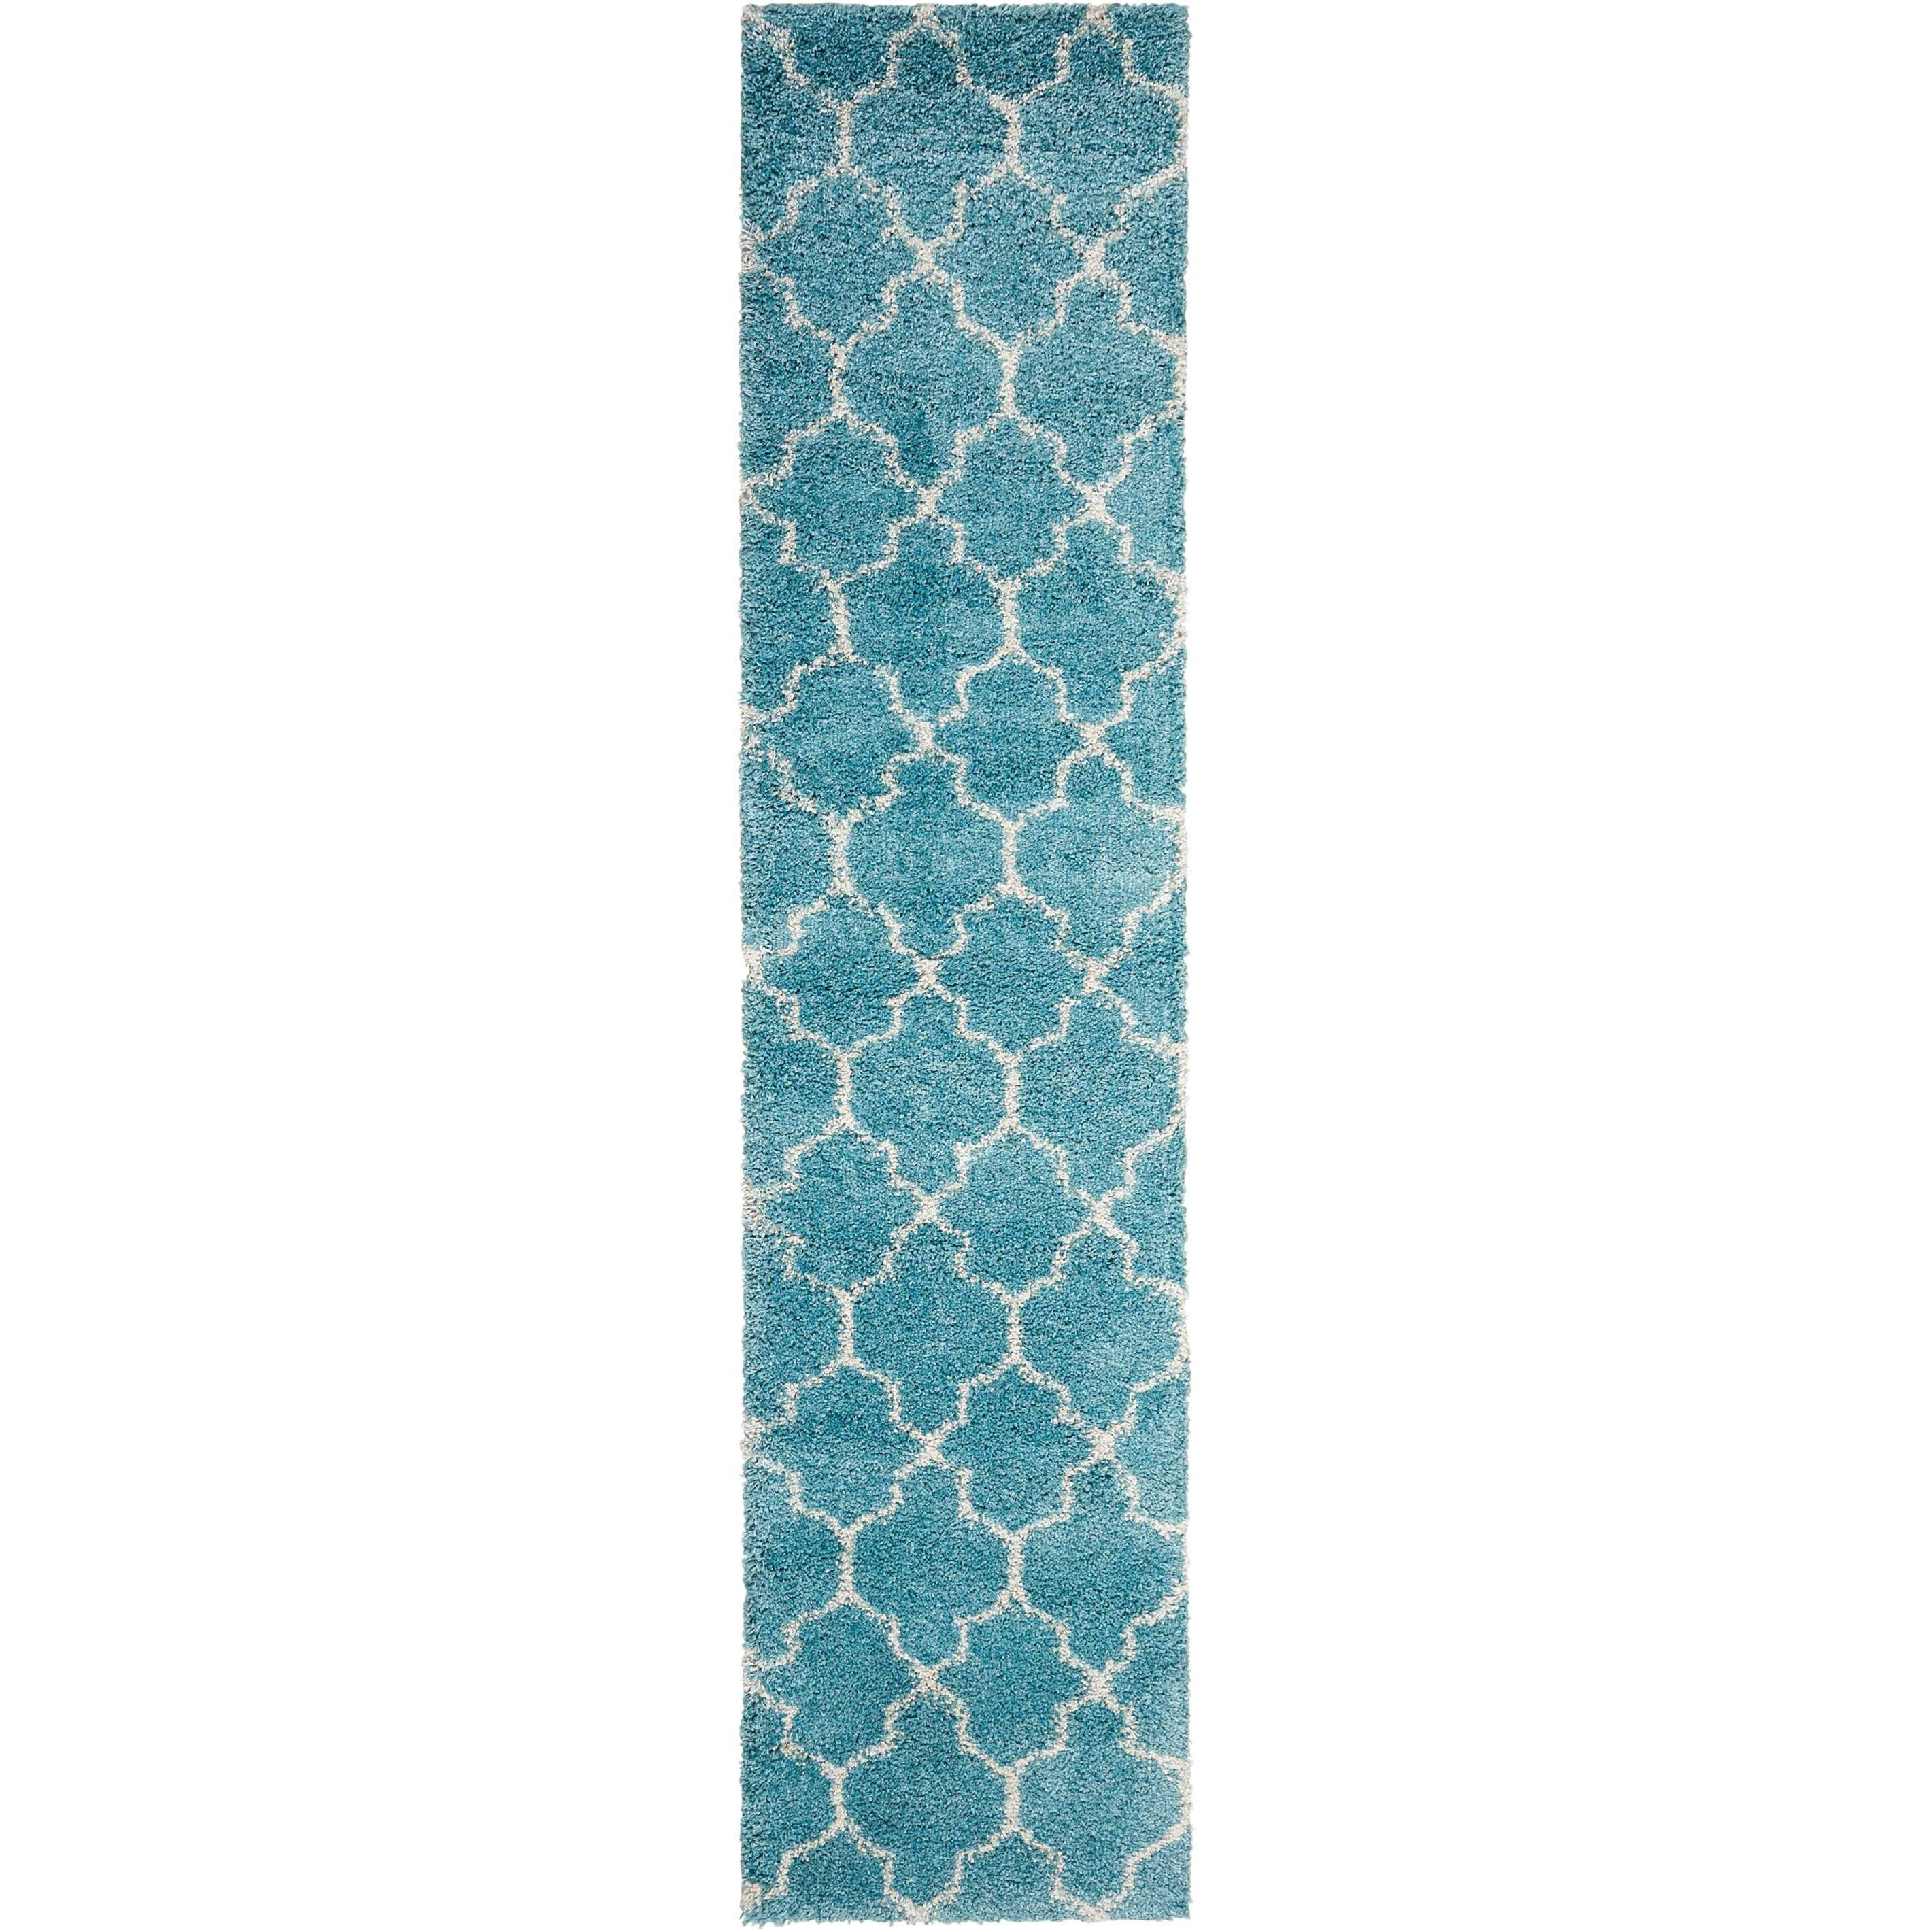 """Amore 2'2"""" x 10' Aqua Runner Rug by Nourison at Home Collections Furniture"""